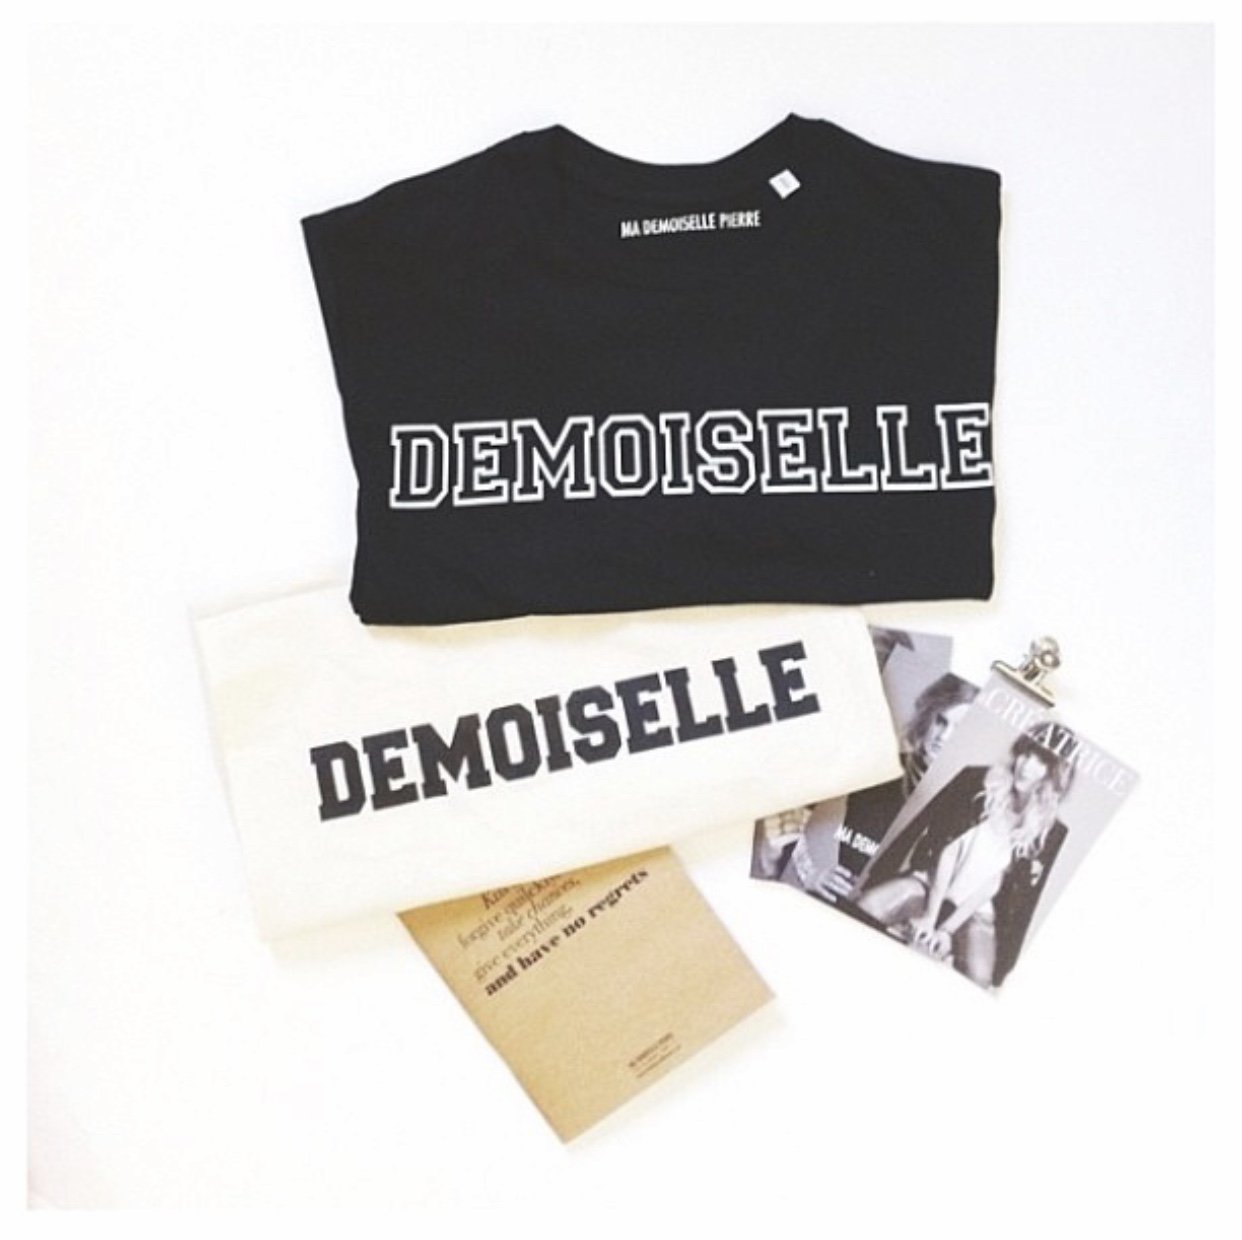 Tee-shirt, tote bag & cartes postale